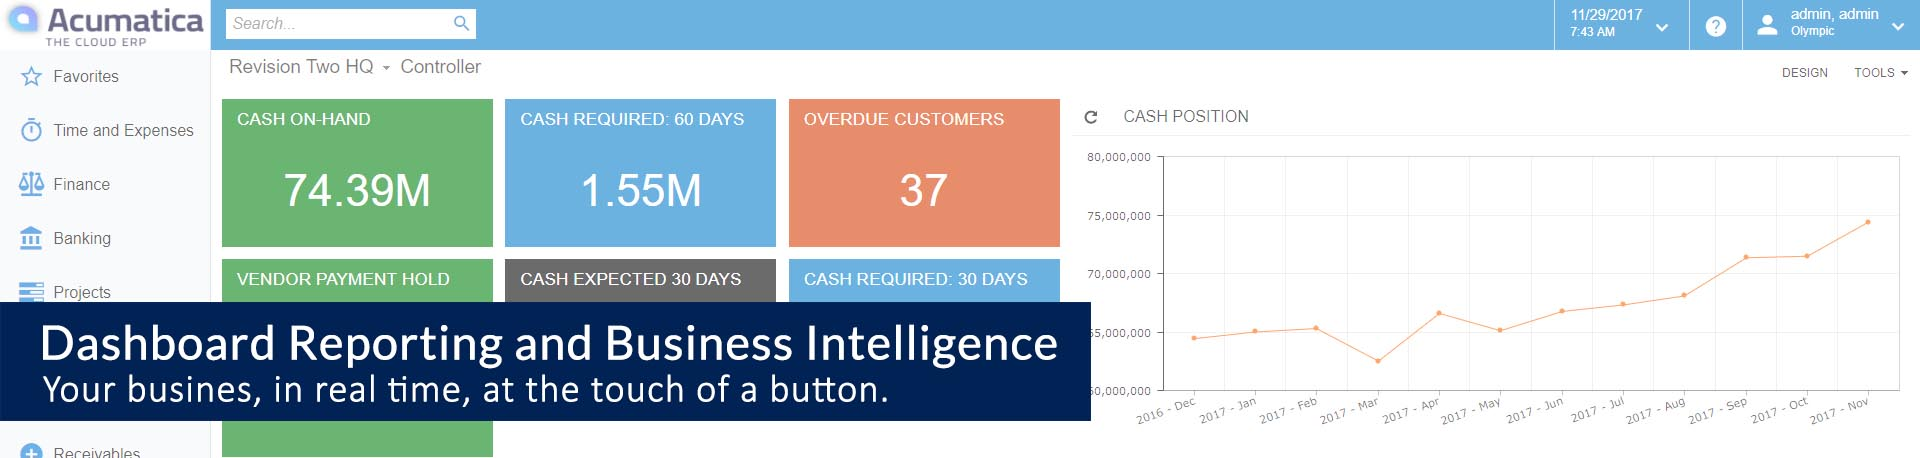 Acumatica Dashboard Reporting and Business Intelligence